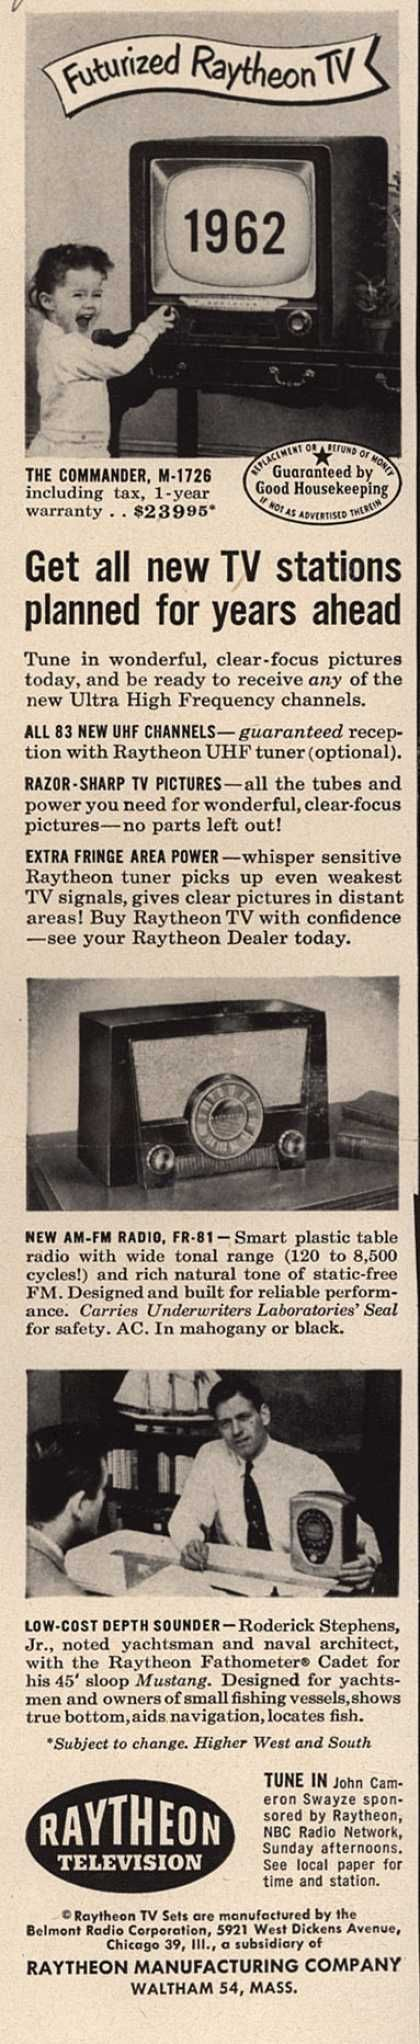 Mindy put on a big smile for Mom and her camera, but she was actually getting really tired of the one show on their TV, which starred a giant '1962.'